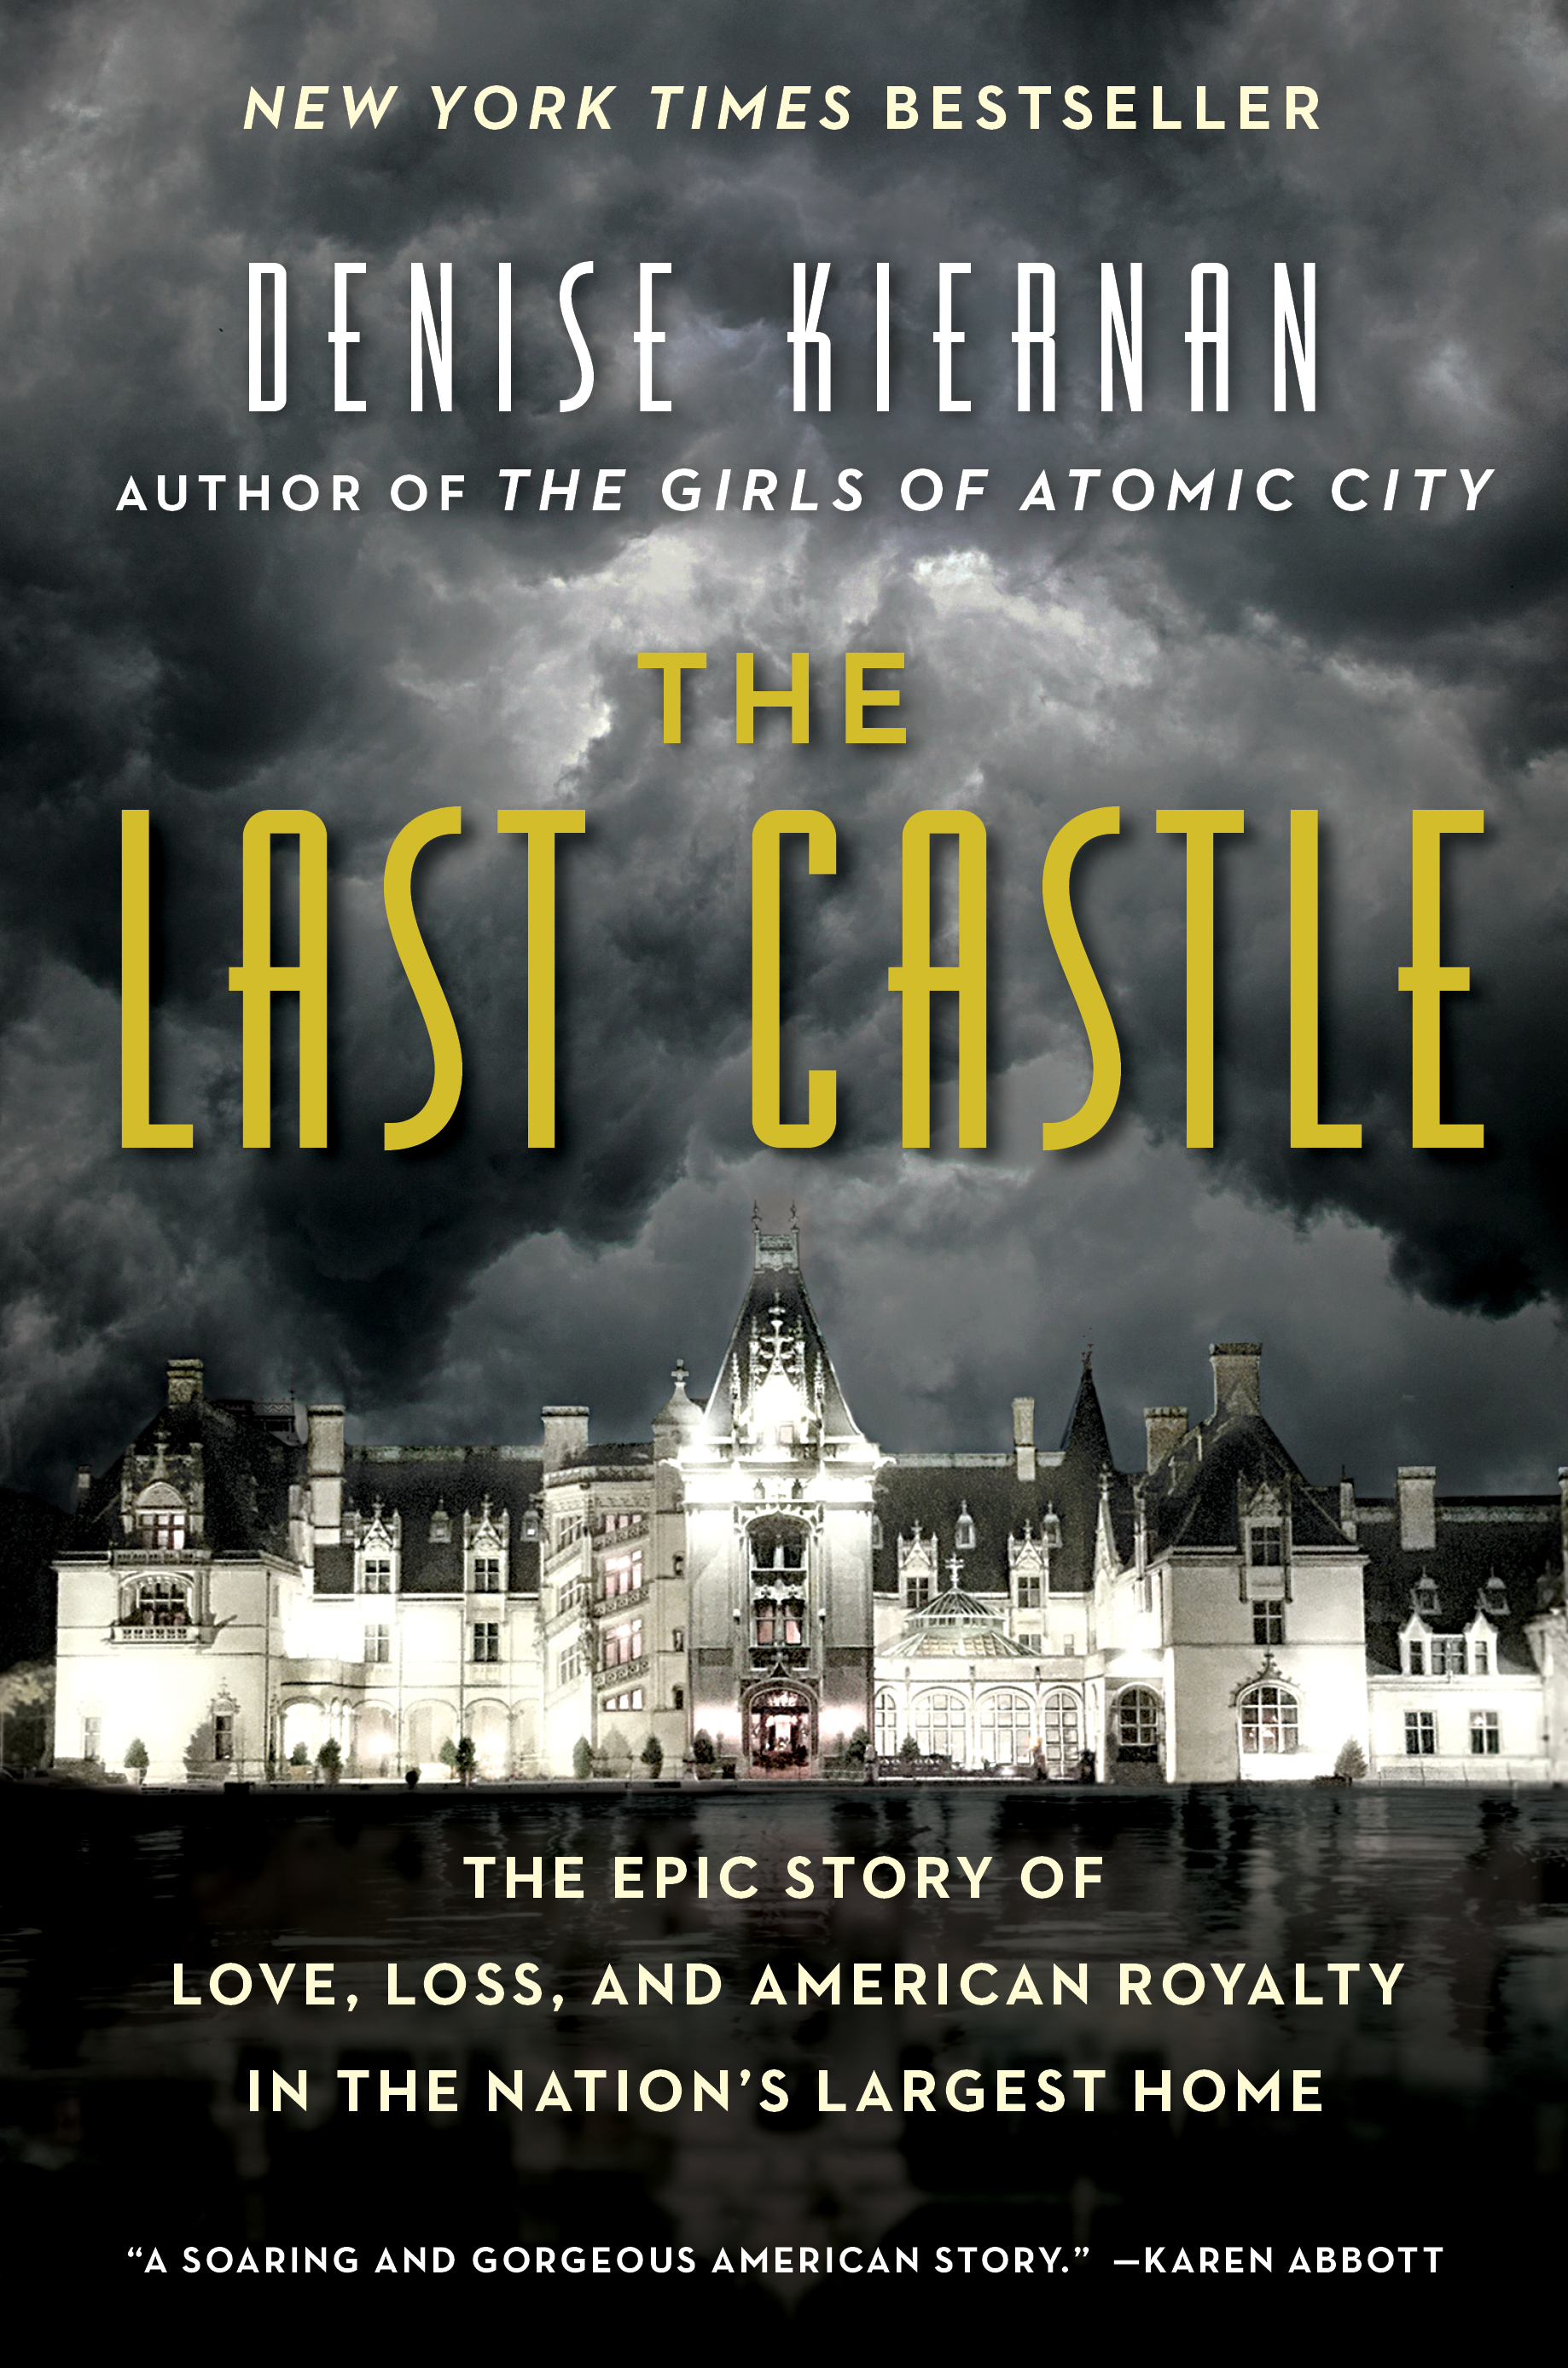 The Last Castle Hardcover